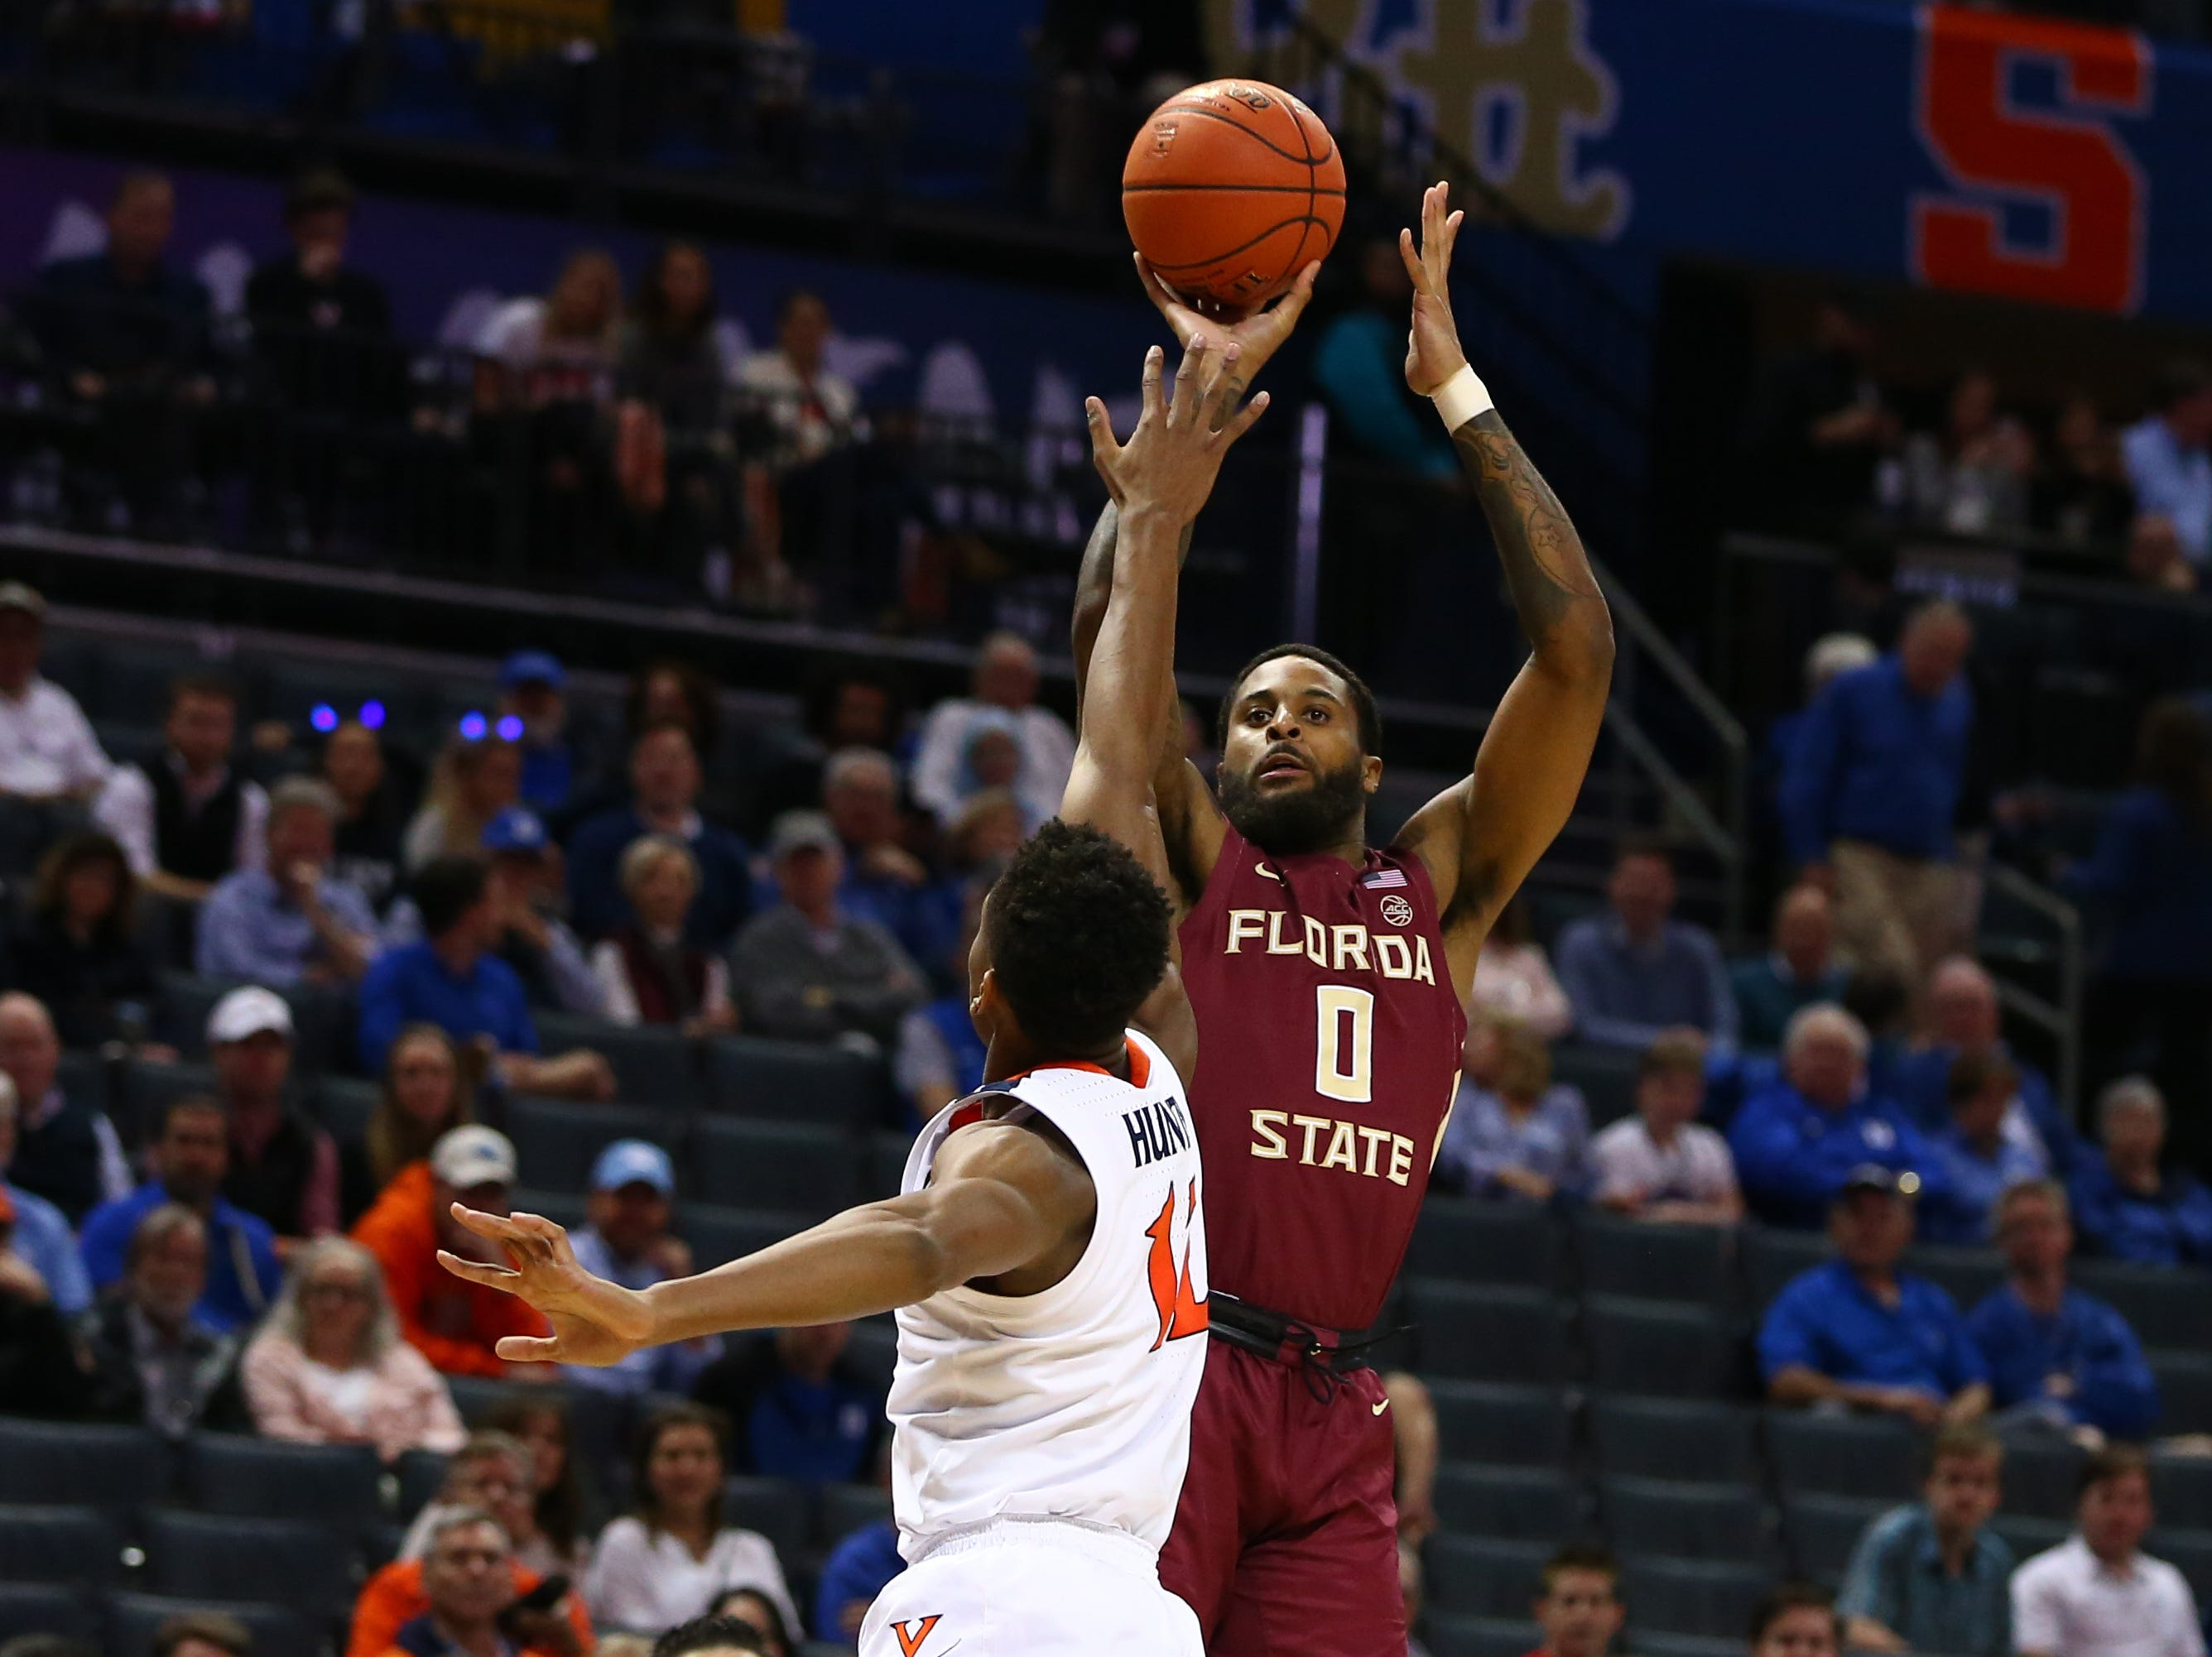 Mar 15, 2019; Charlotte, NC, USA; Florida State Seminoles forward Phil Cofer (0) shoots the ball against Virginia Cavaliers guard De'Andre Hunter (12) in the first half in the ACC conference tournament at Spectrum Center. Mandatory Credit: Jeremy Brevard-USA TODAY Sports